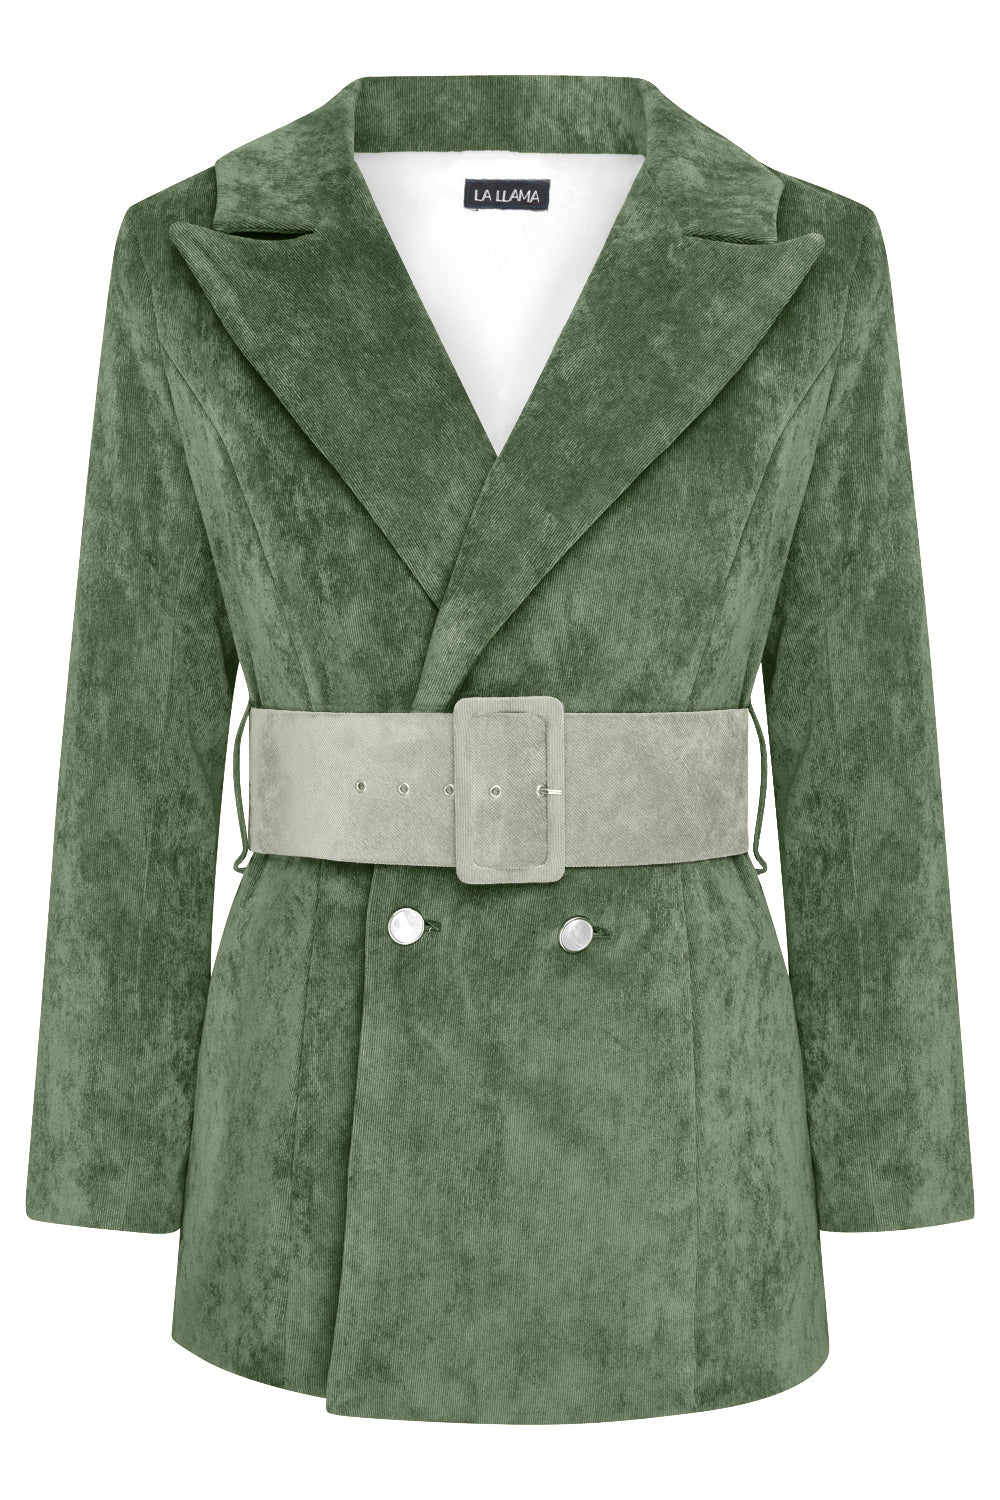 HYDRA BLAZER - BOTTLE GREEN WITH SAGE GREEN BELT